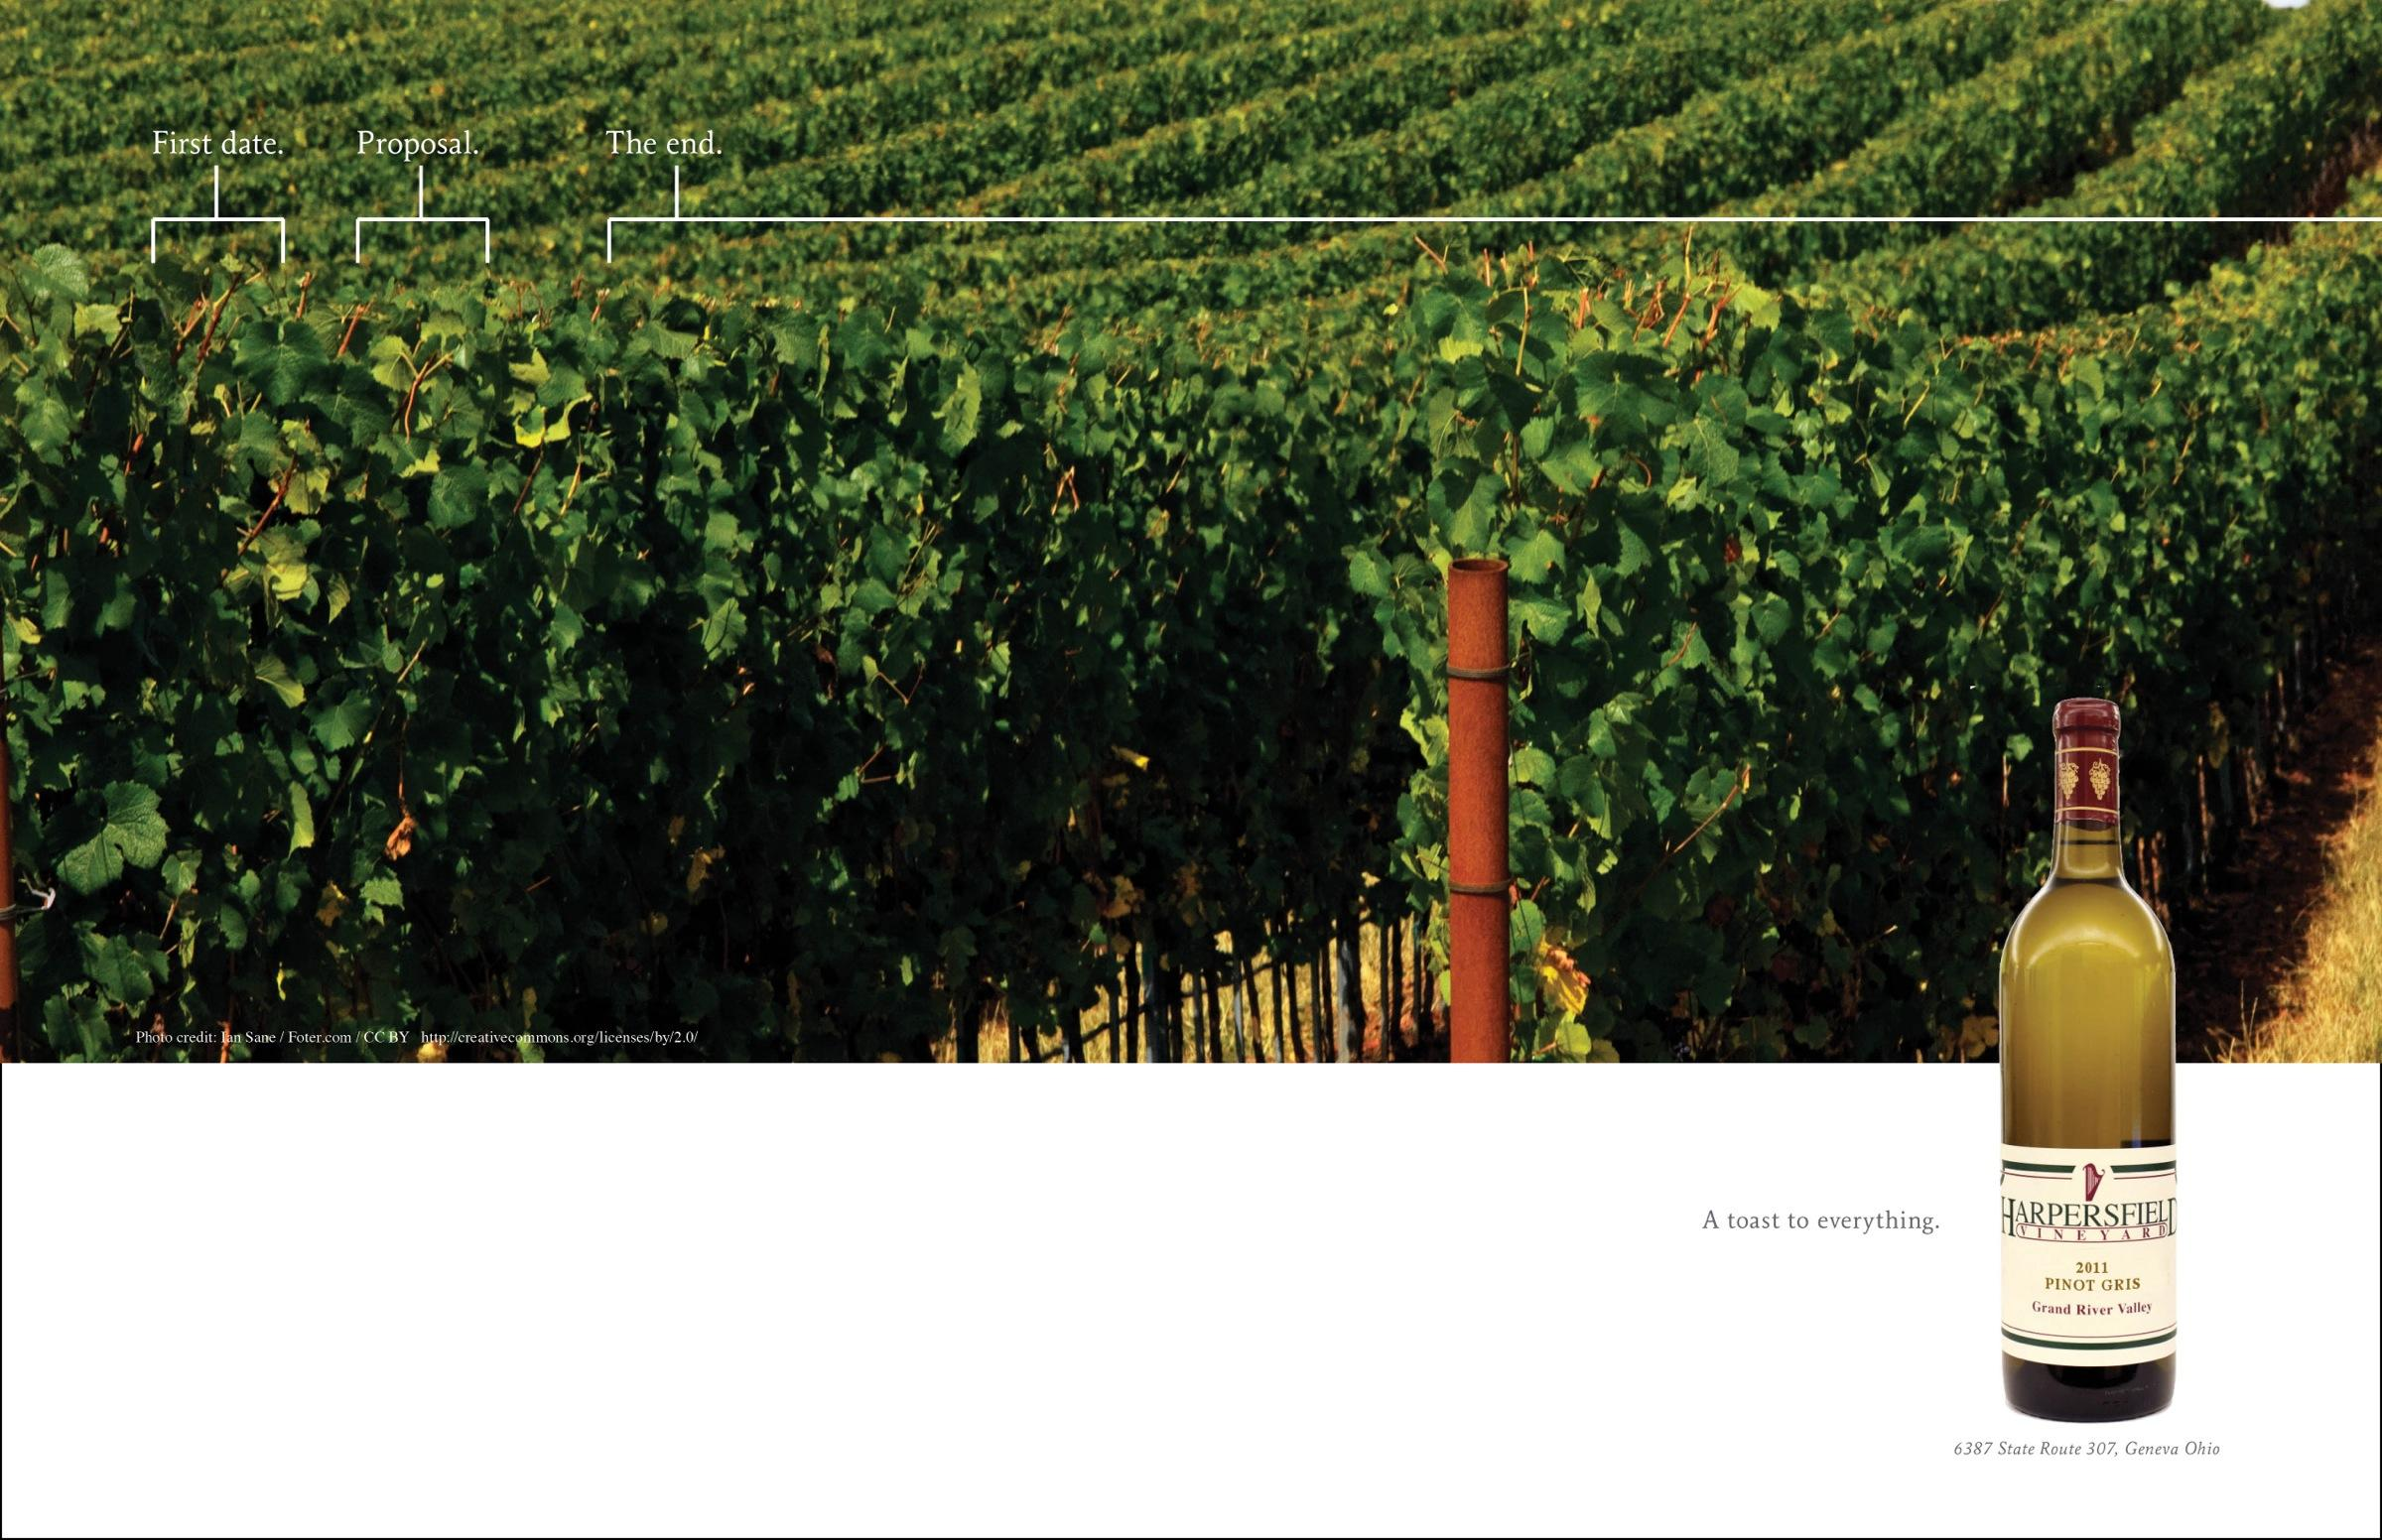 Harpersfield Winery Print Ad -  The end